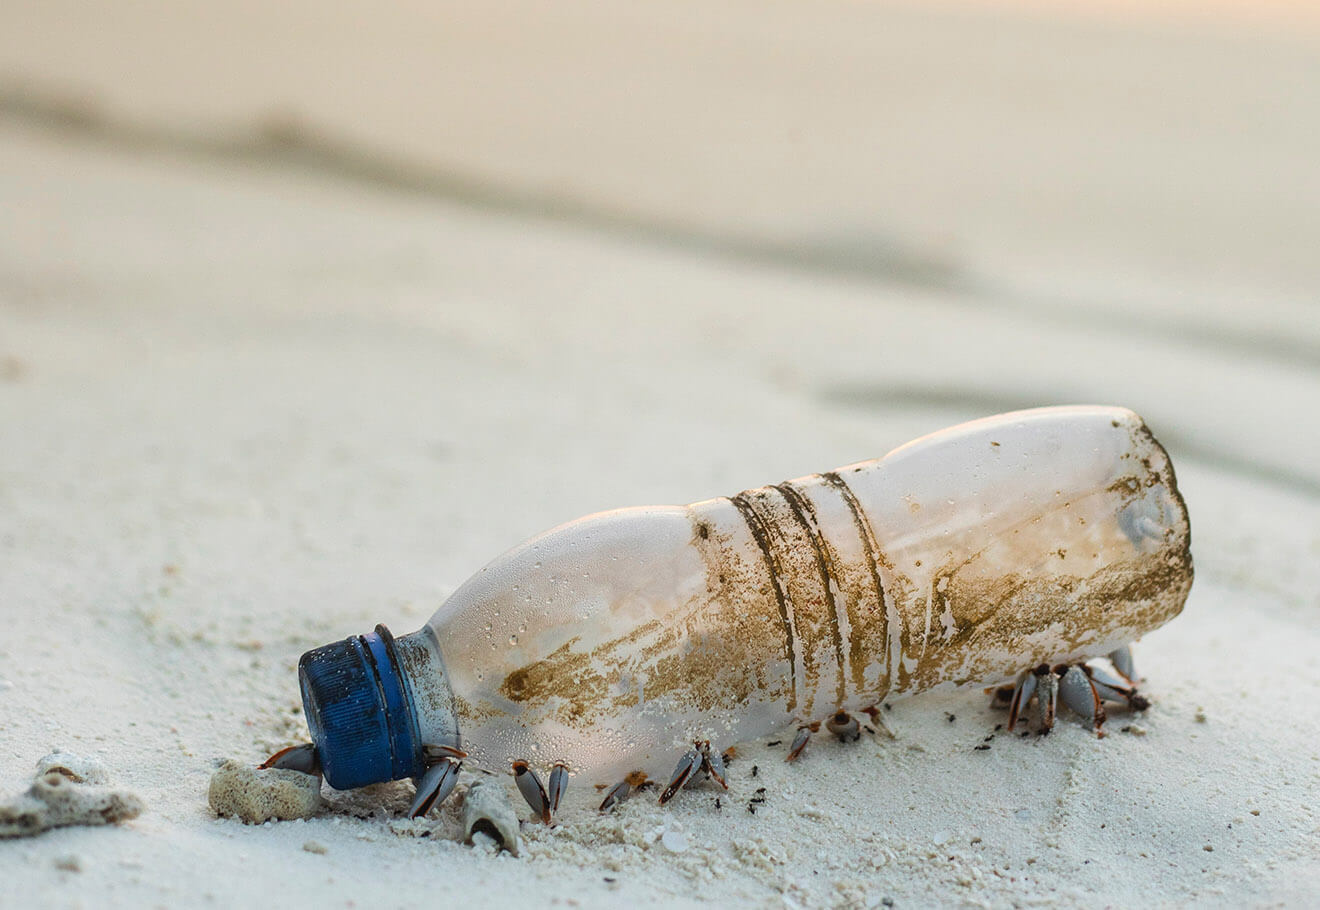 Plastic water bottle washed up on a beach